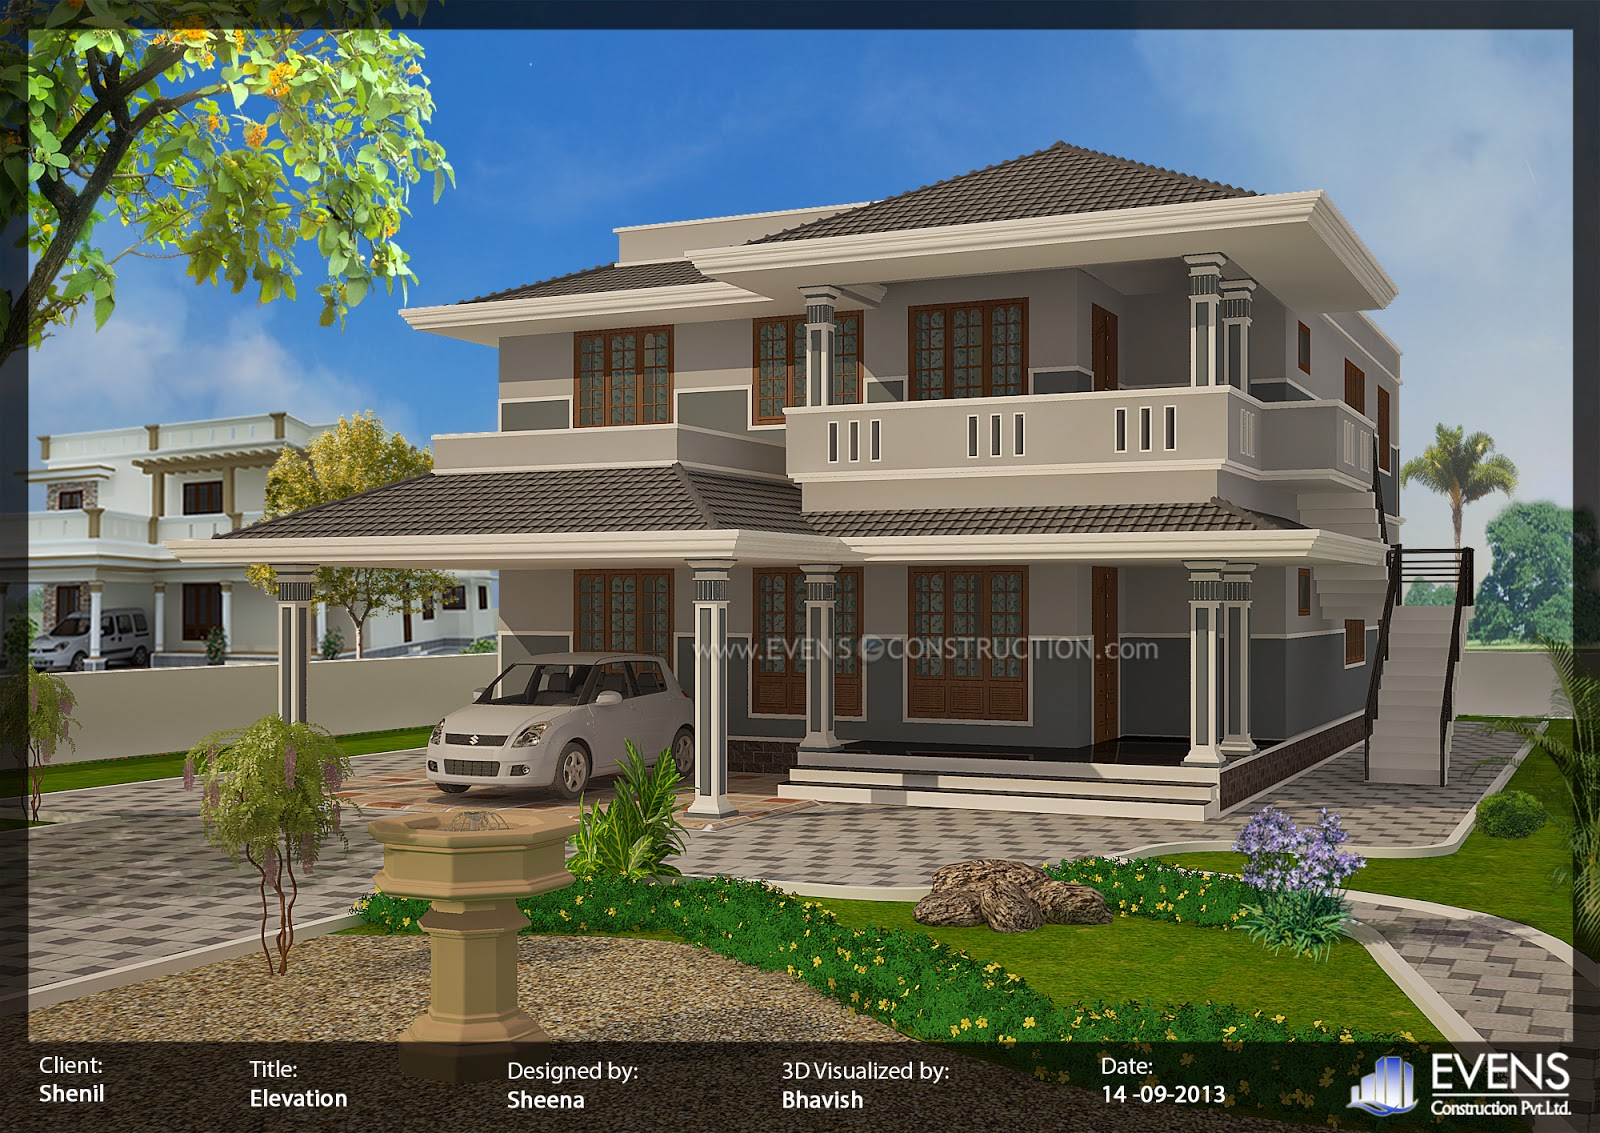 Boundary wall designs techethe 3030 square feet 281 square meter 337 square yards 4 bedroom sloping